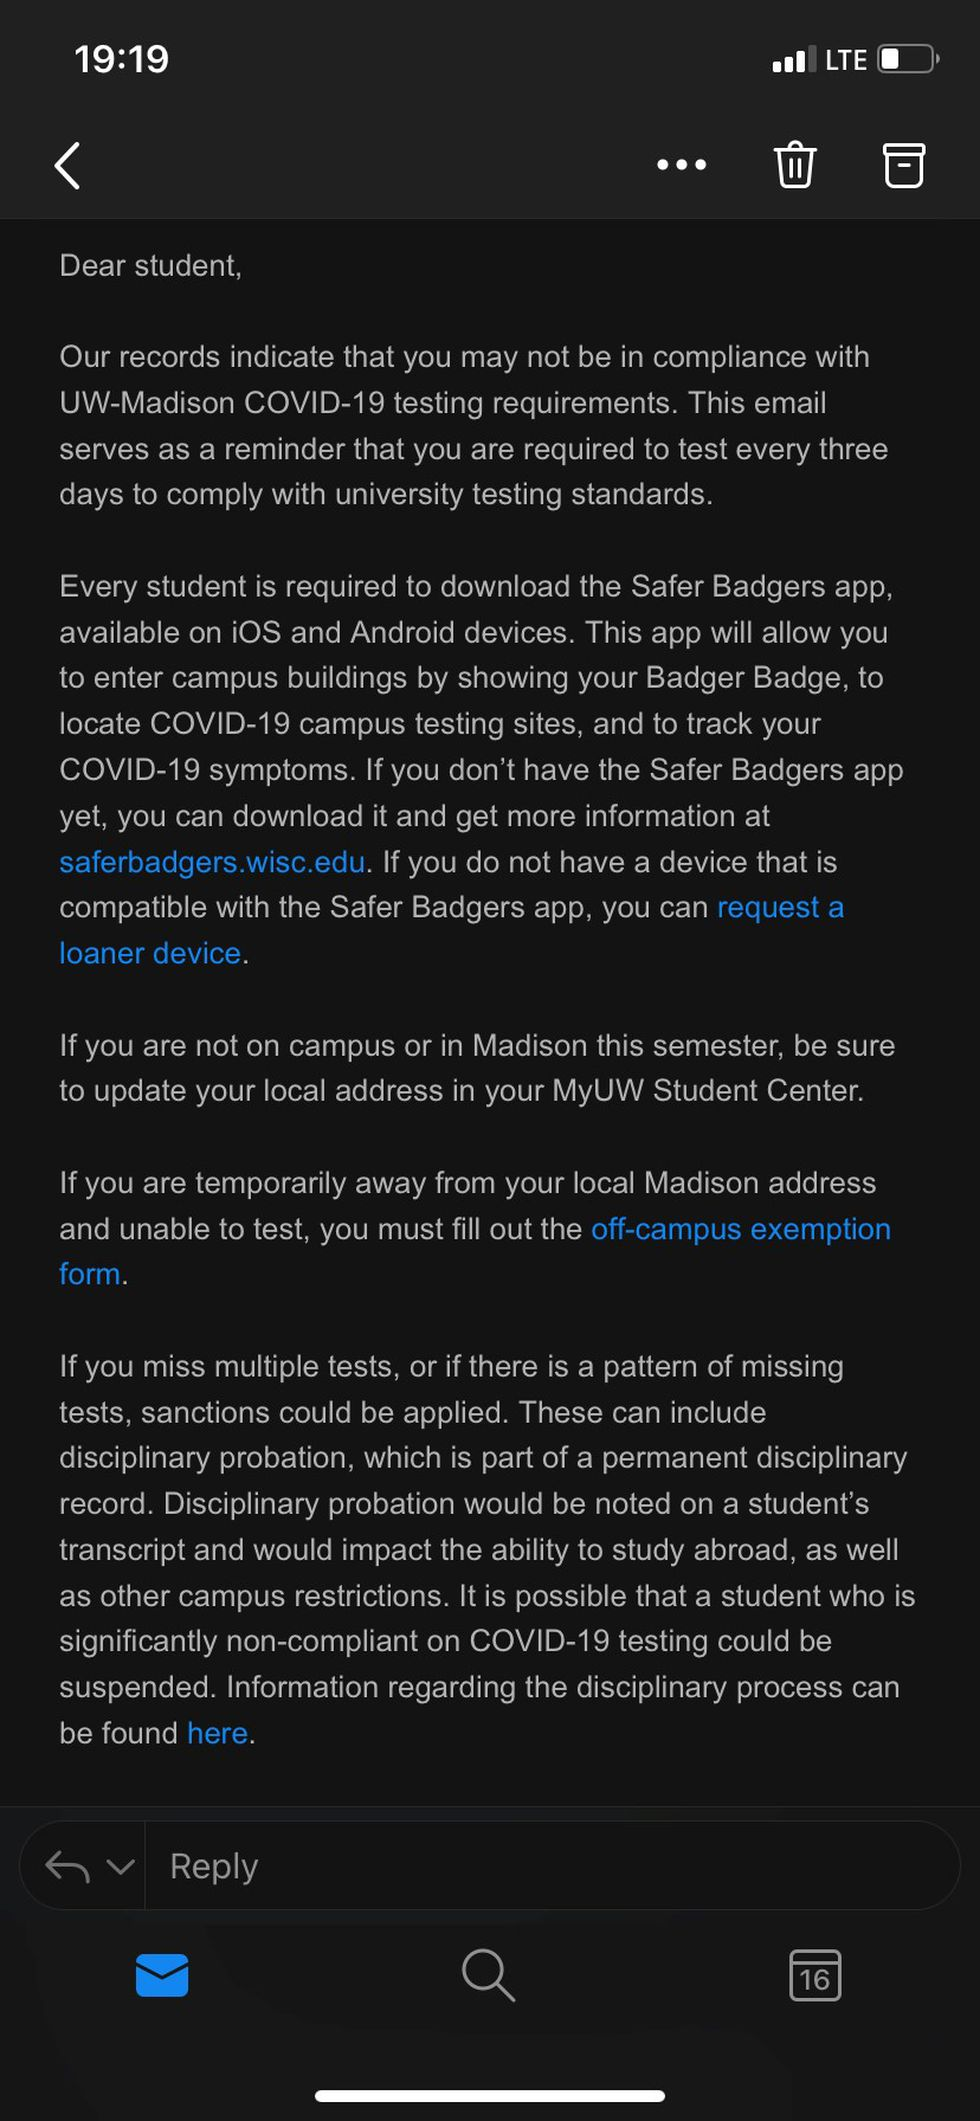 Copy of email sent to UW-Madison students regarding COVID-19 spread.